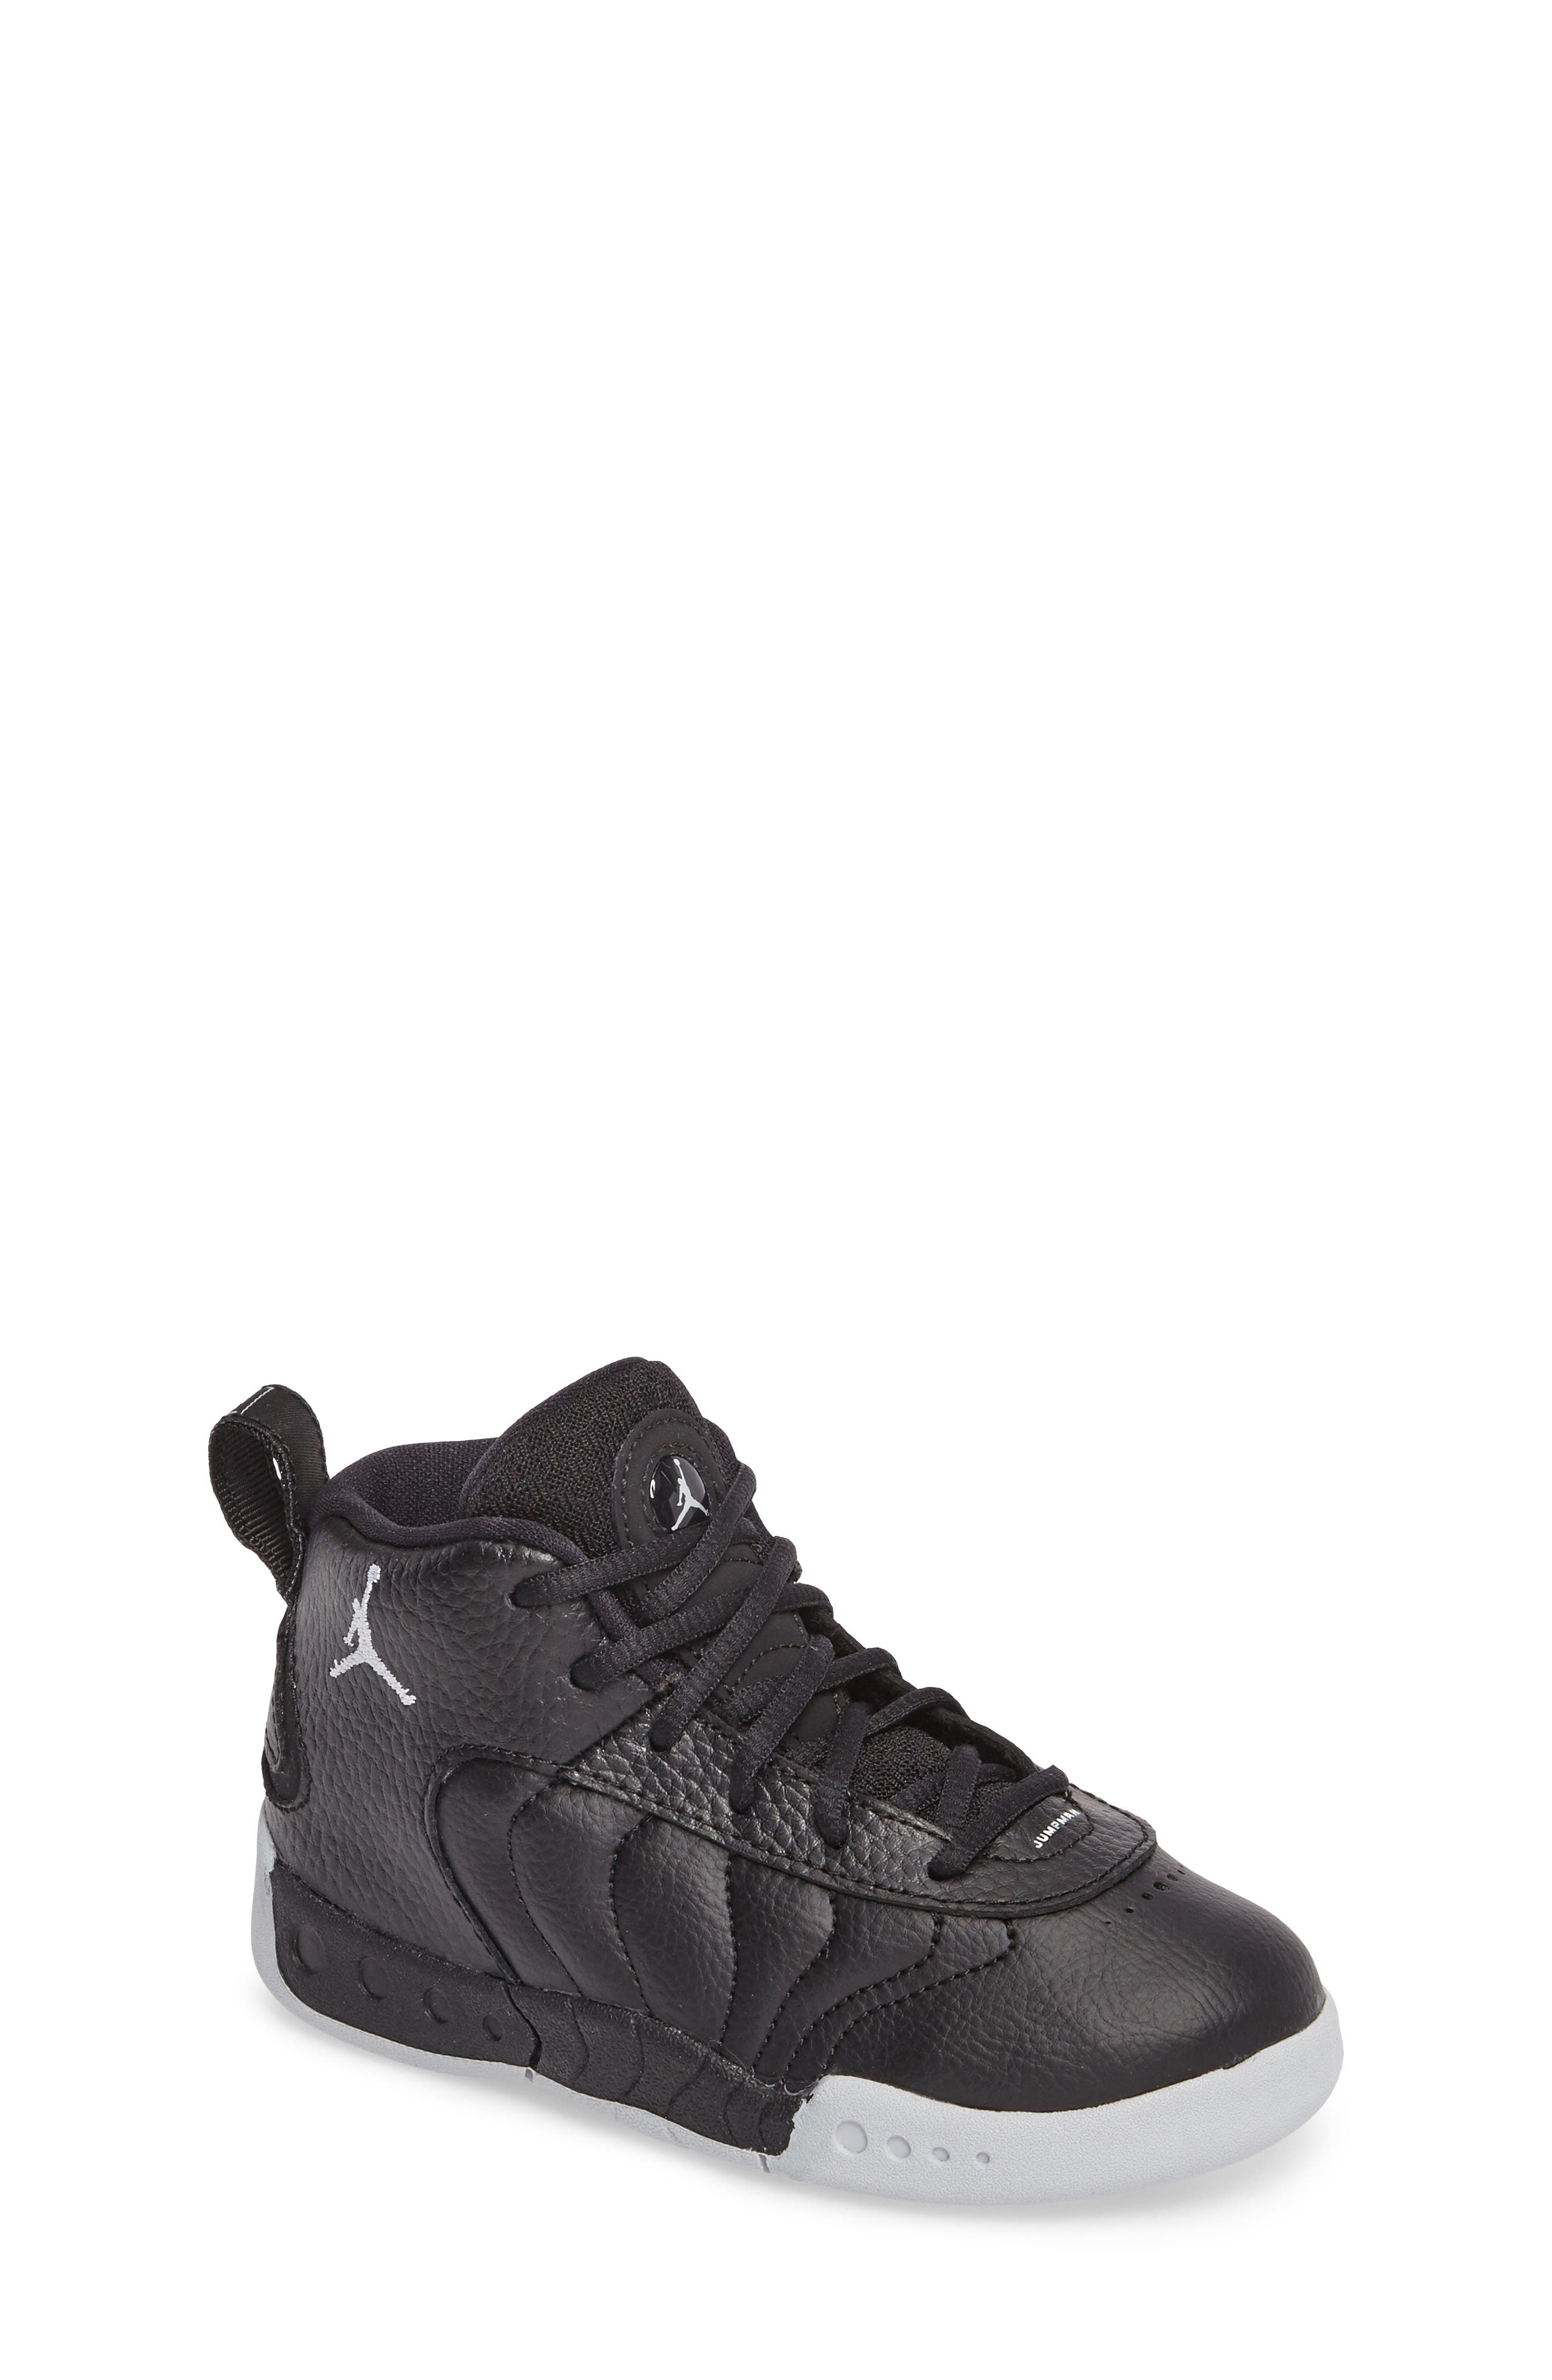 Alternate Image 1 Selected - Nike Jordan Jumpman Pro BT Mid Top Sneaker (Baby, Walker & Toddler)